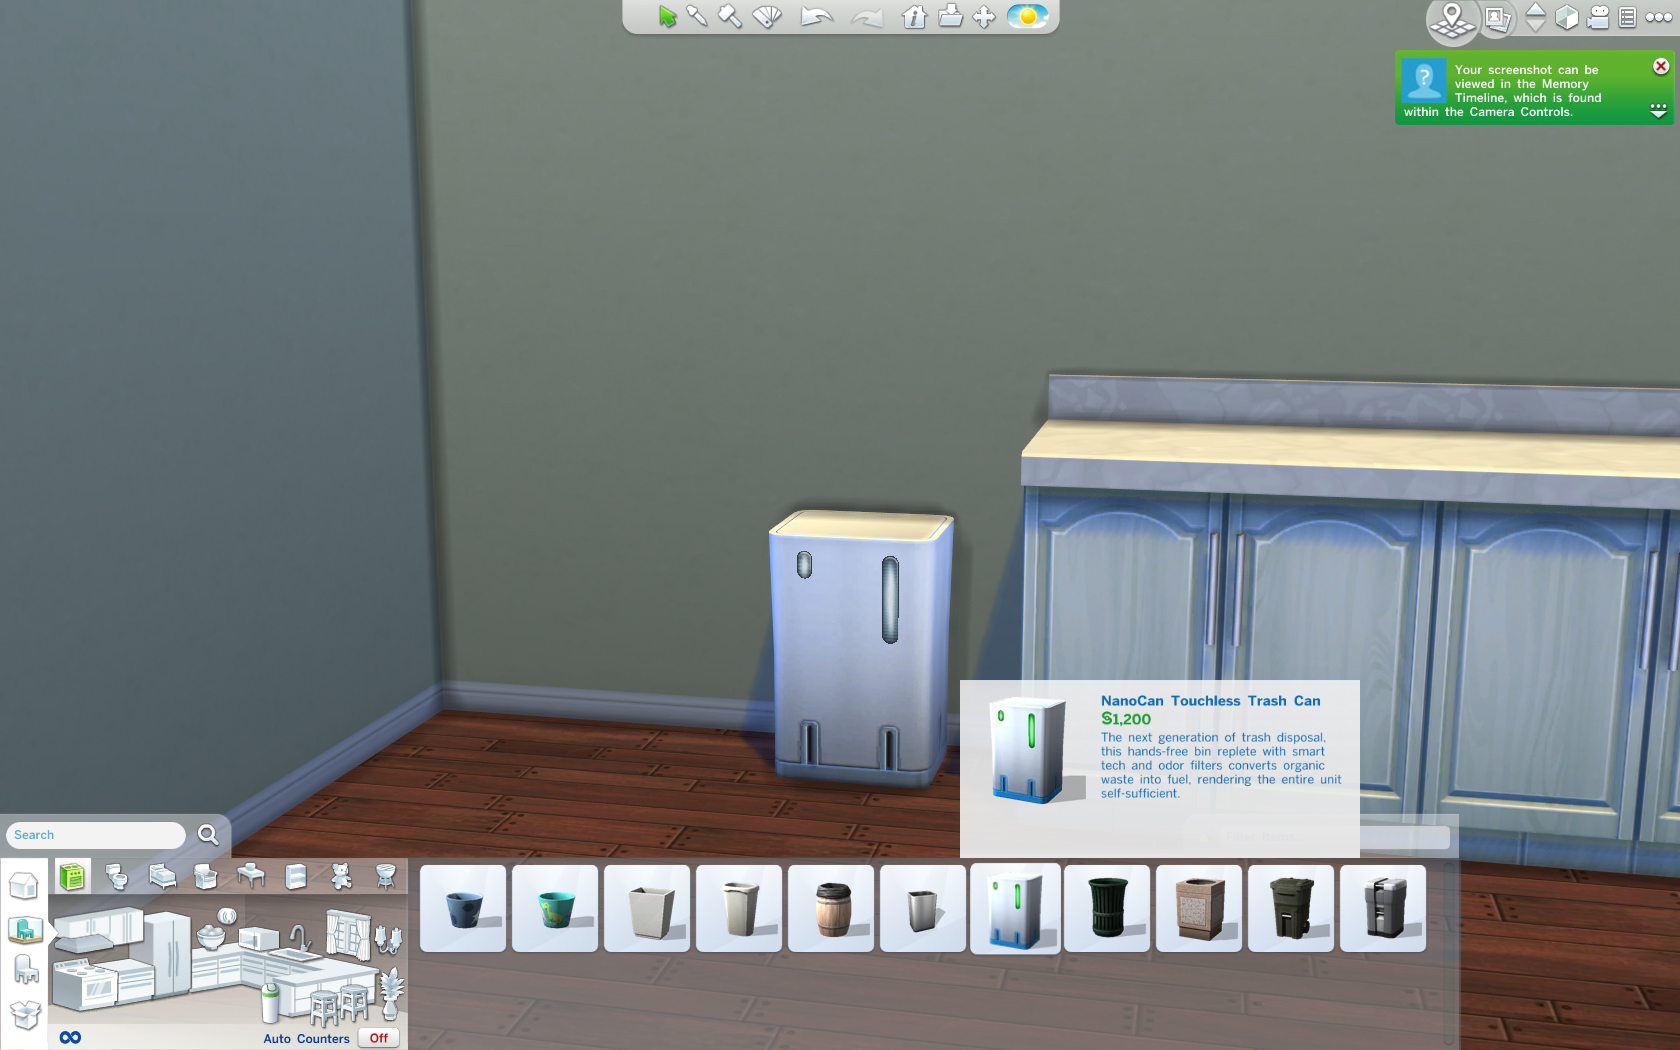 Mod The Sims Nanocan Touchless Trash Can Override